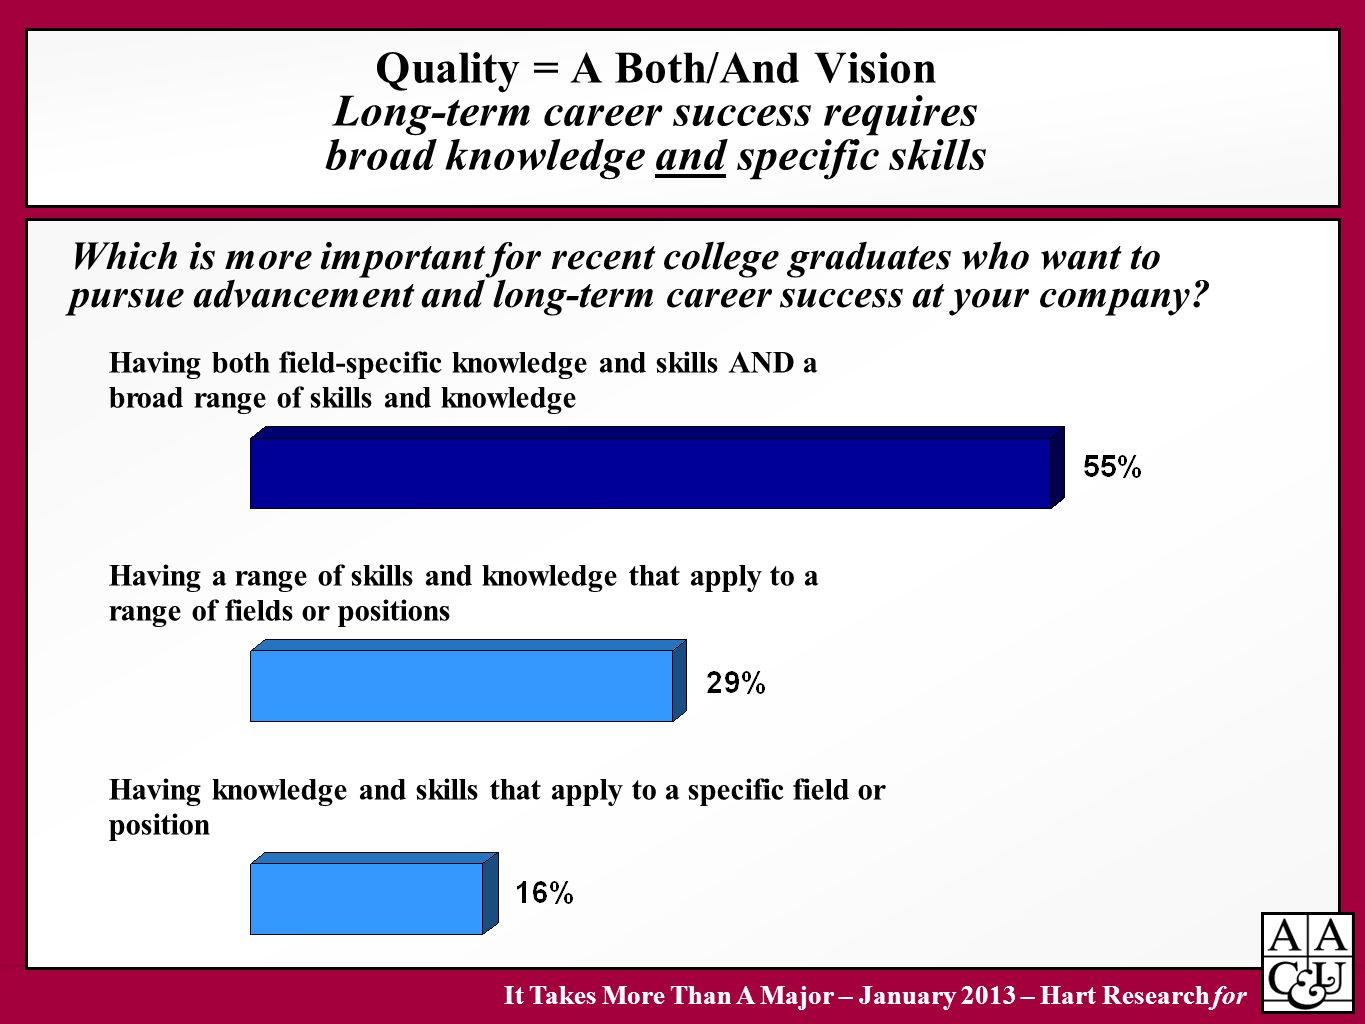 Quality = A Both/And Vision Long-term career success requires broad knowledge and specific skills